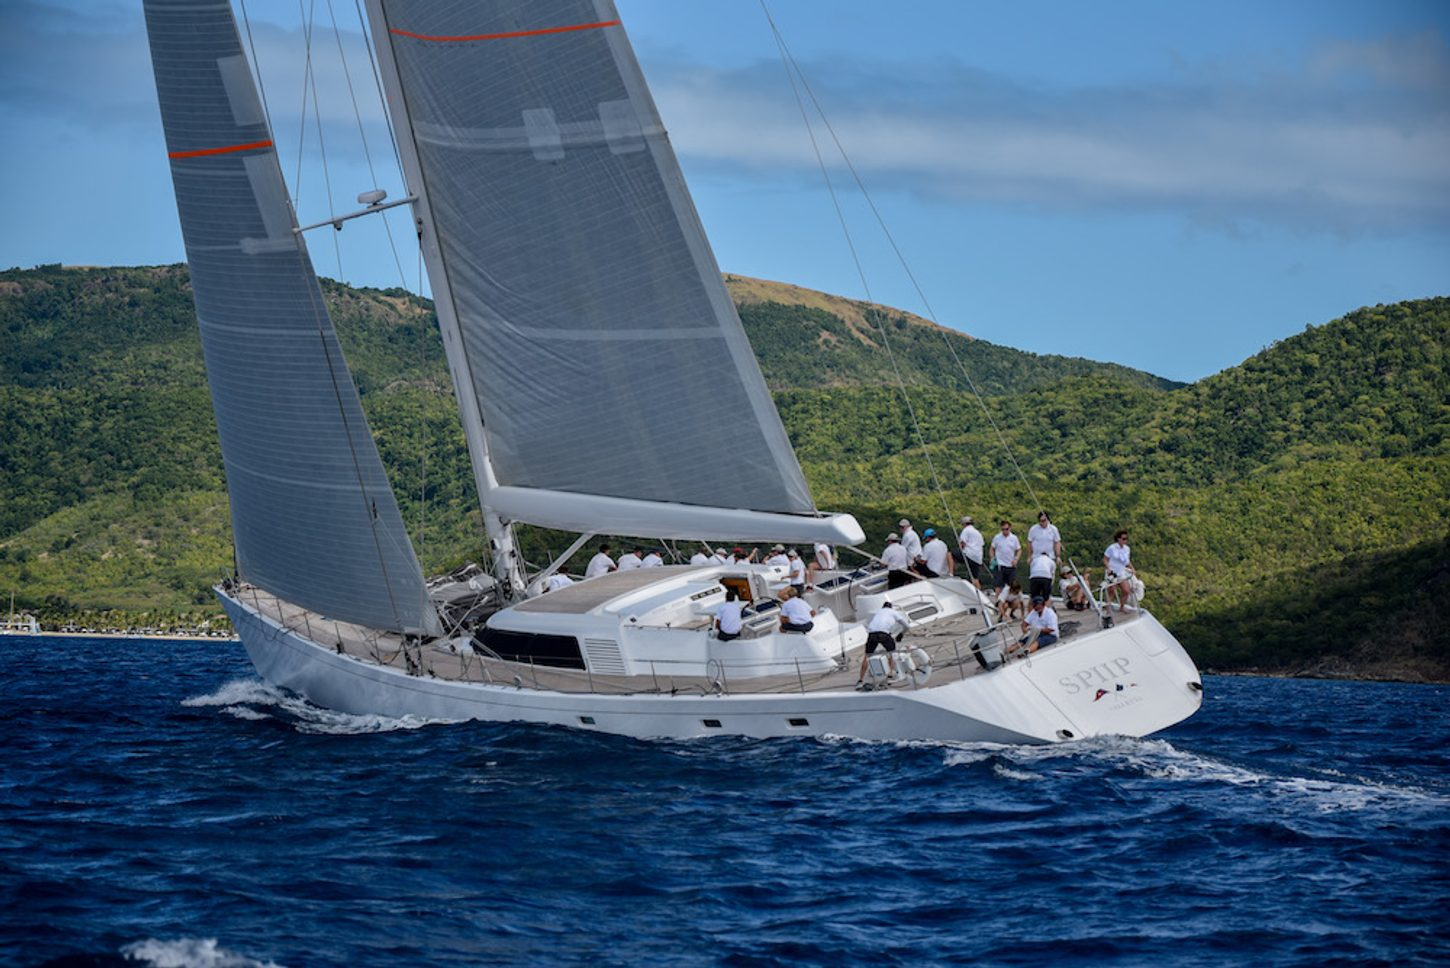 charter yacht SPIIP sails at the Superyacht Challenge Antigua 2018